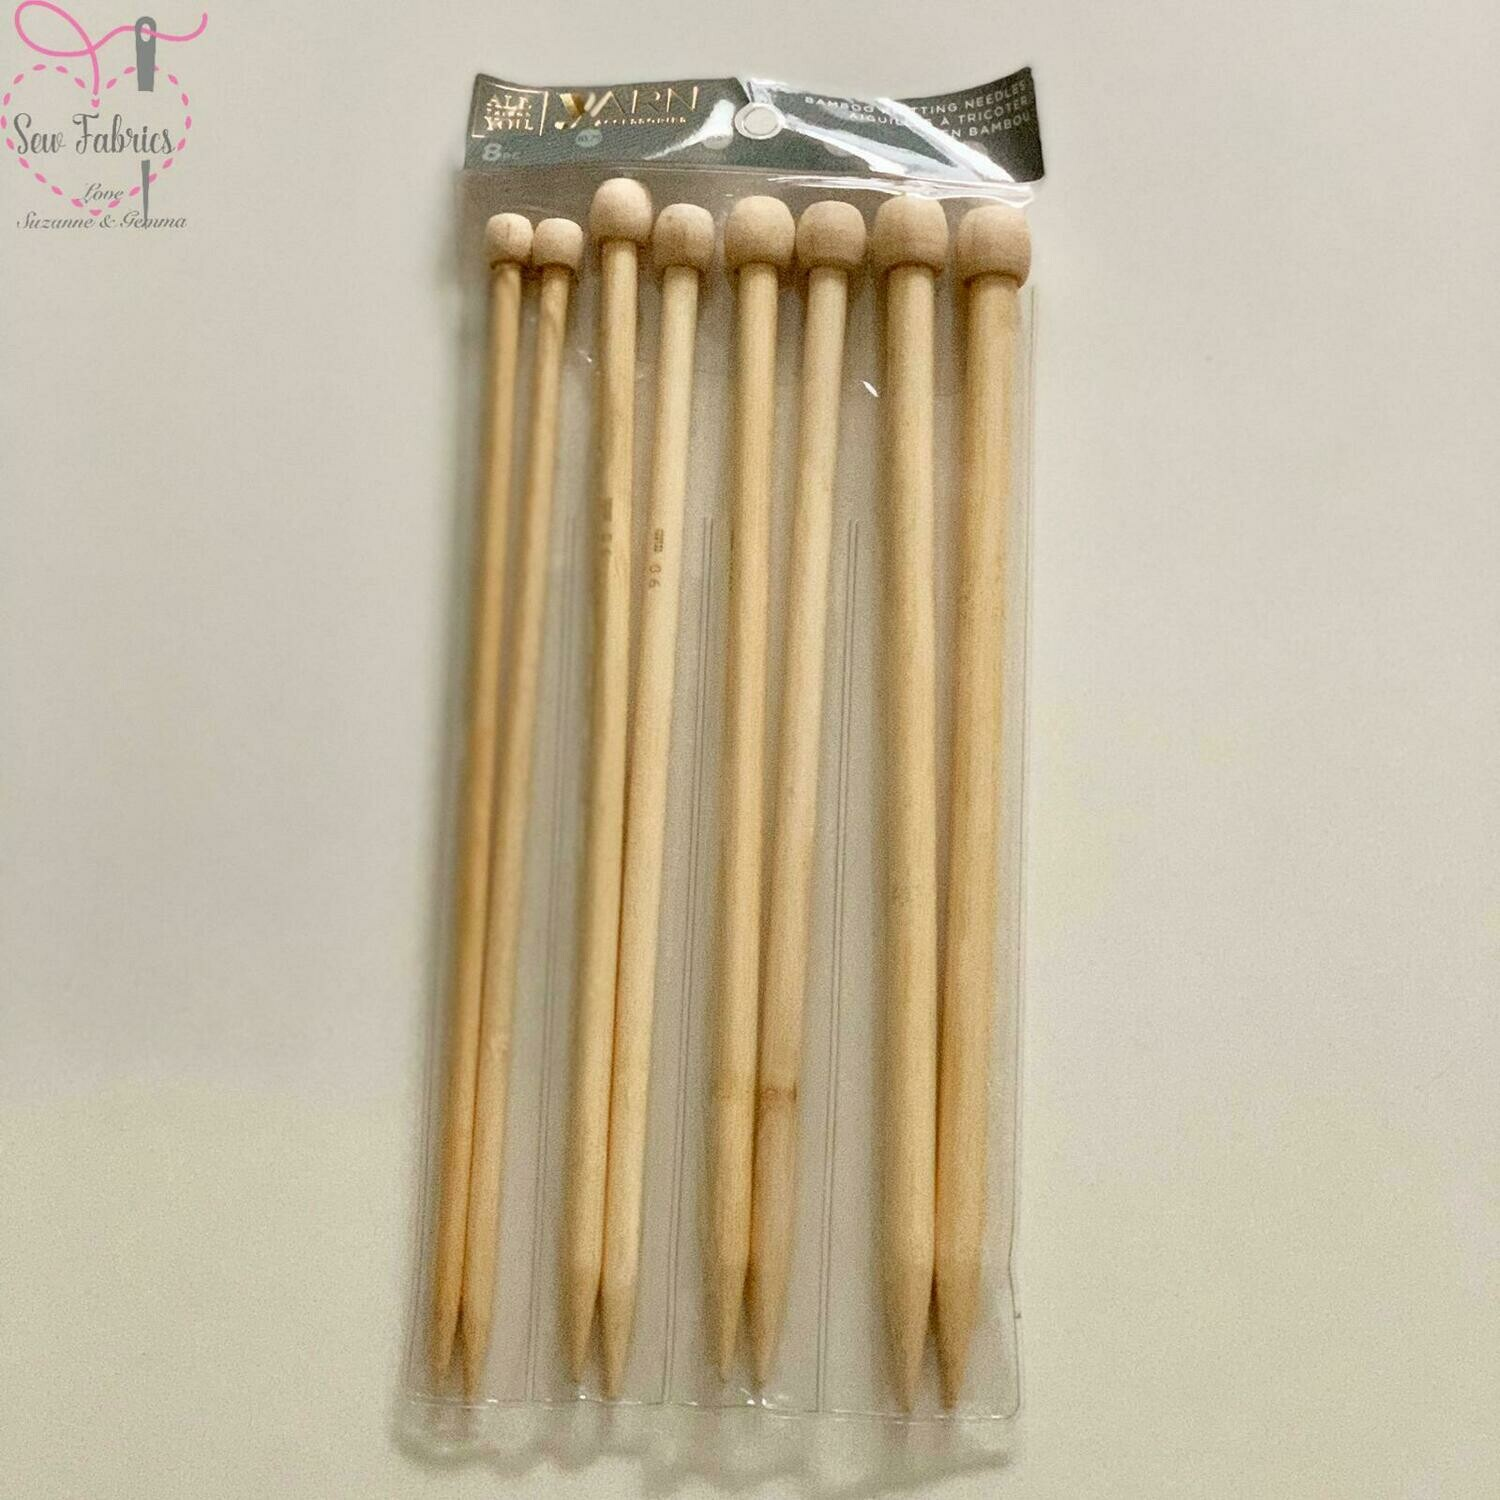 Pack of 4 Darice Bamboo Knitting Needles / Pins in Sizes 7mm, 9mm, 10mm and 12mm